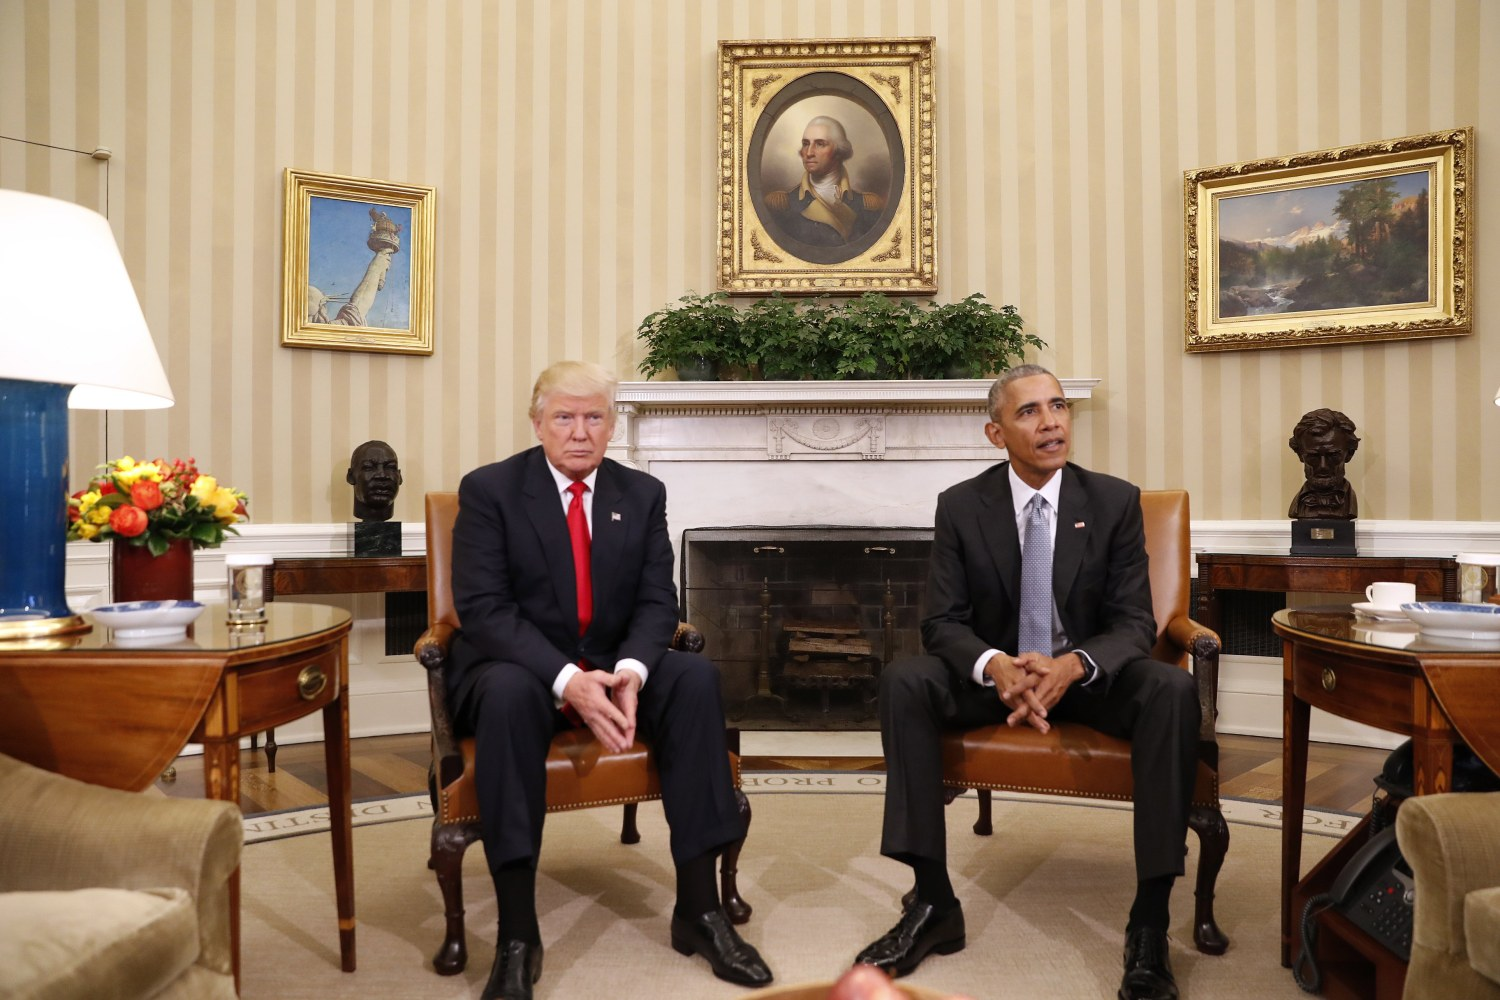 Obama hosts trump at white house for first meeting after election image m4hsunfo